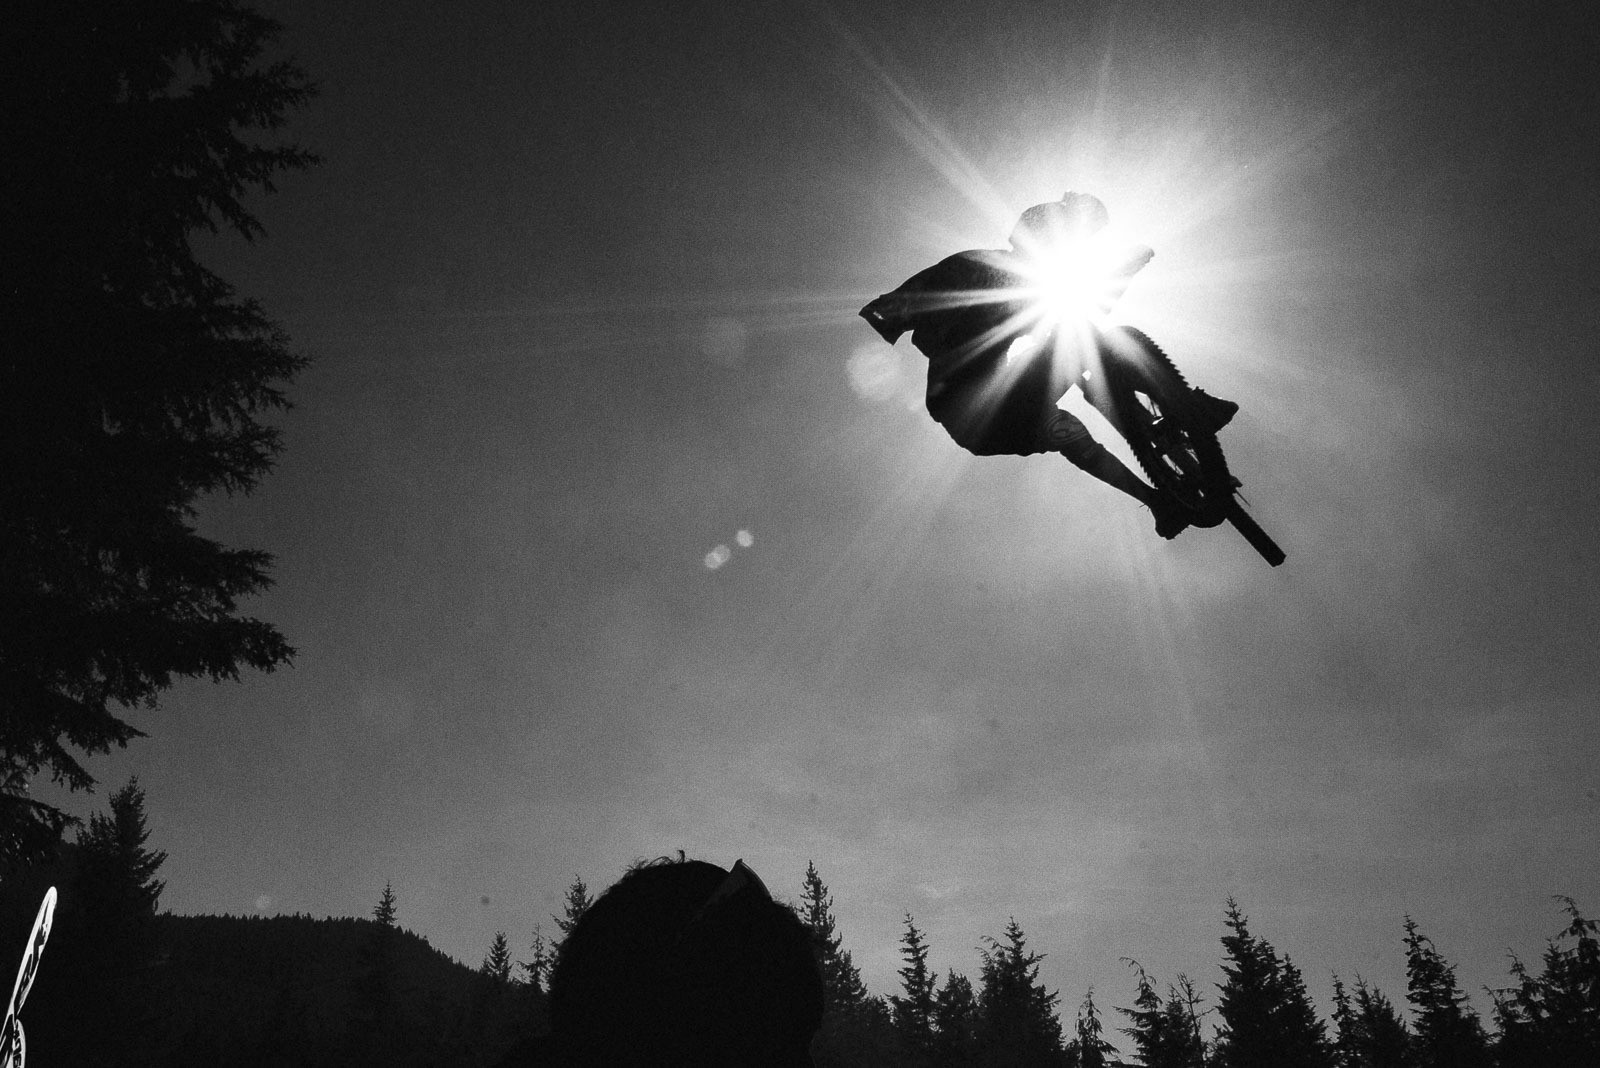 Angelic Airtime - Whip Off World Champs Photo Blast - Mountain Biking Pictures - Vital MTB